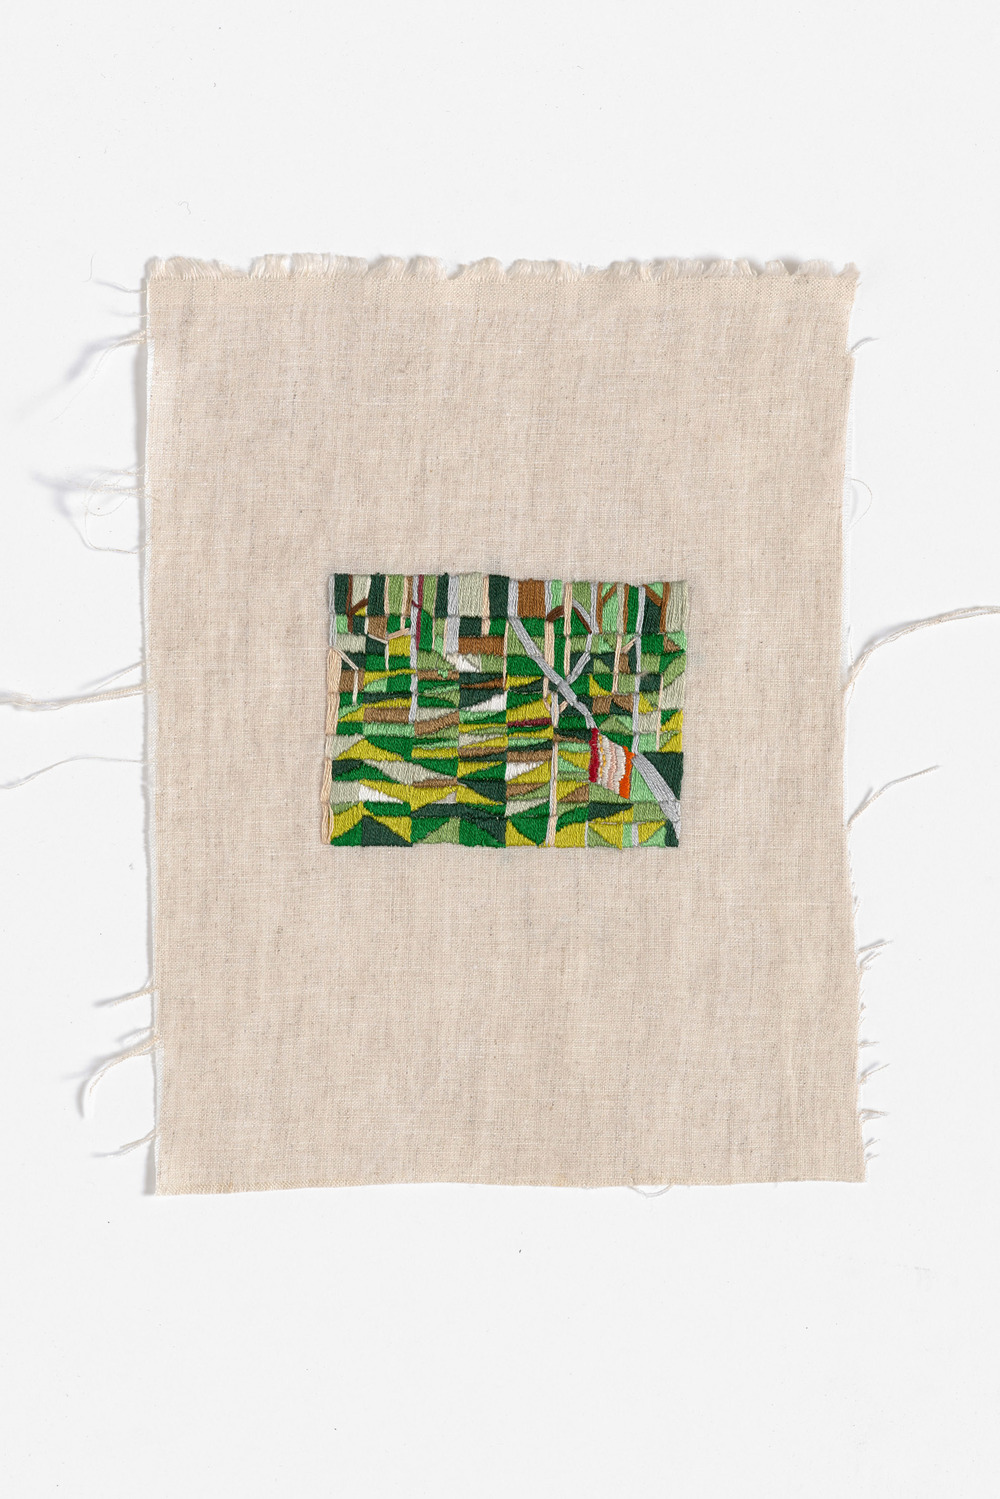 Back of camp, Walkerville  2015 Cotton thread on linen 19 x 25cm